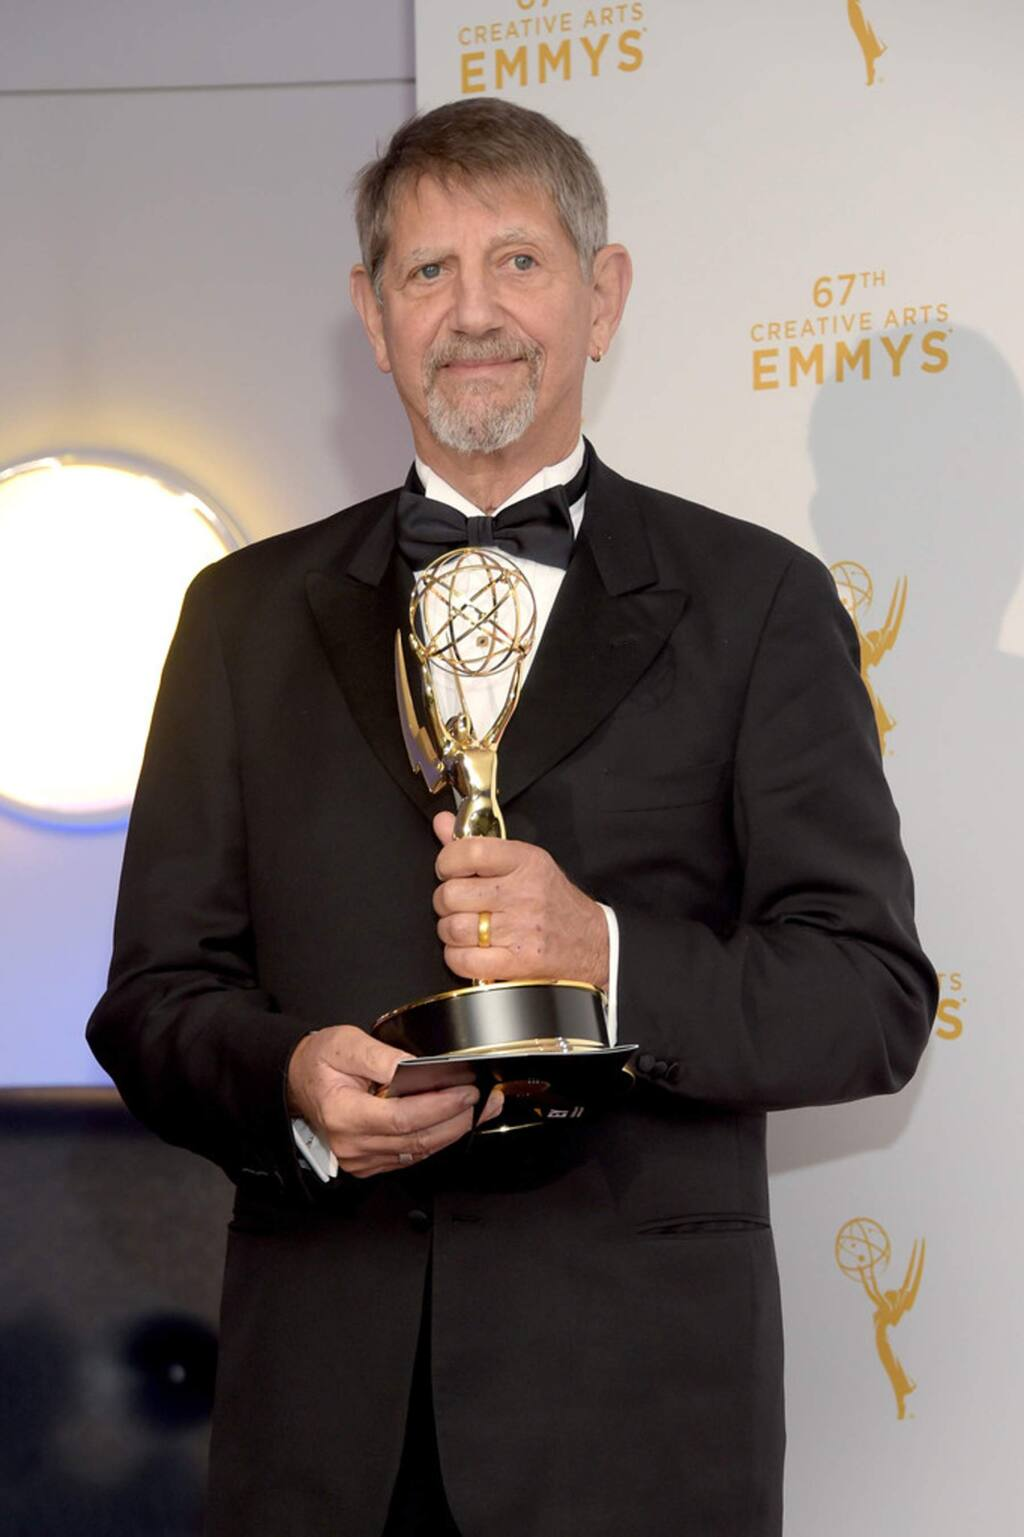 Sonoma County resident Peter Coyote has had an eclectic, award-winning career as an actor, author, director, screenwriter and narrator of films, theater, television and audiobooks. (petercoyote.com)